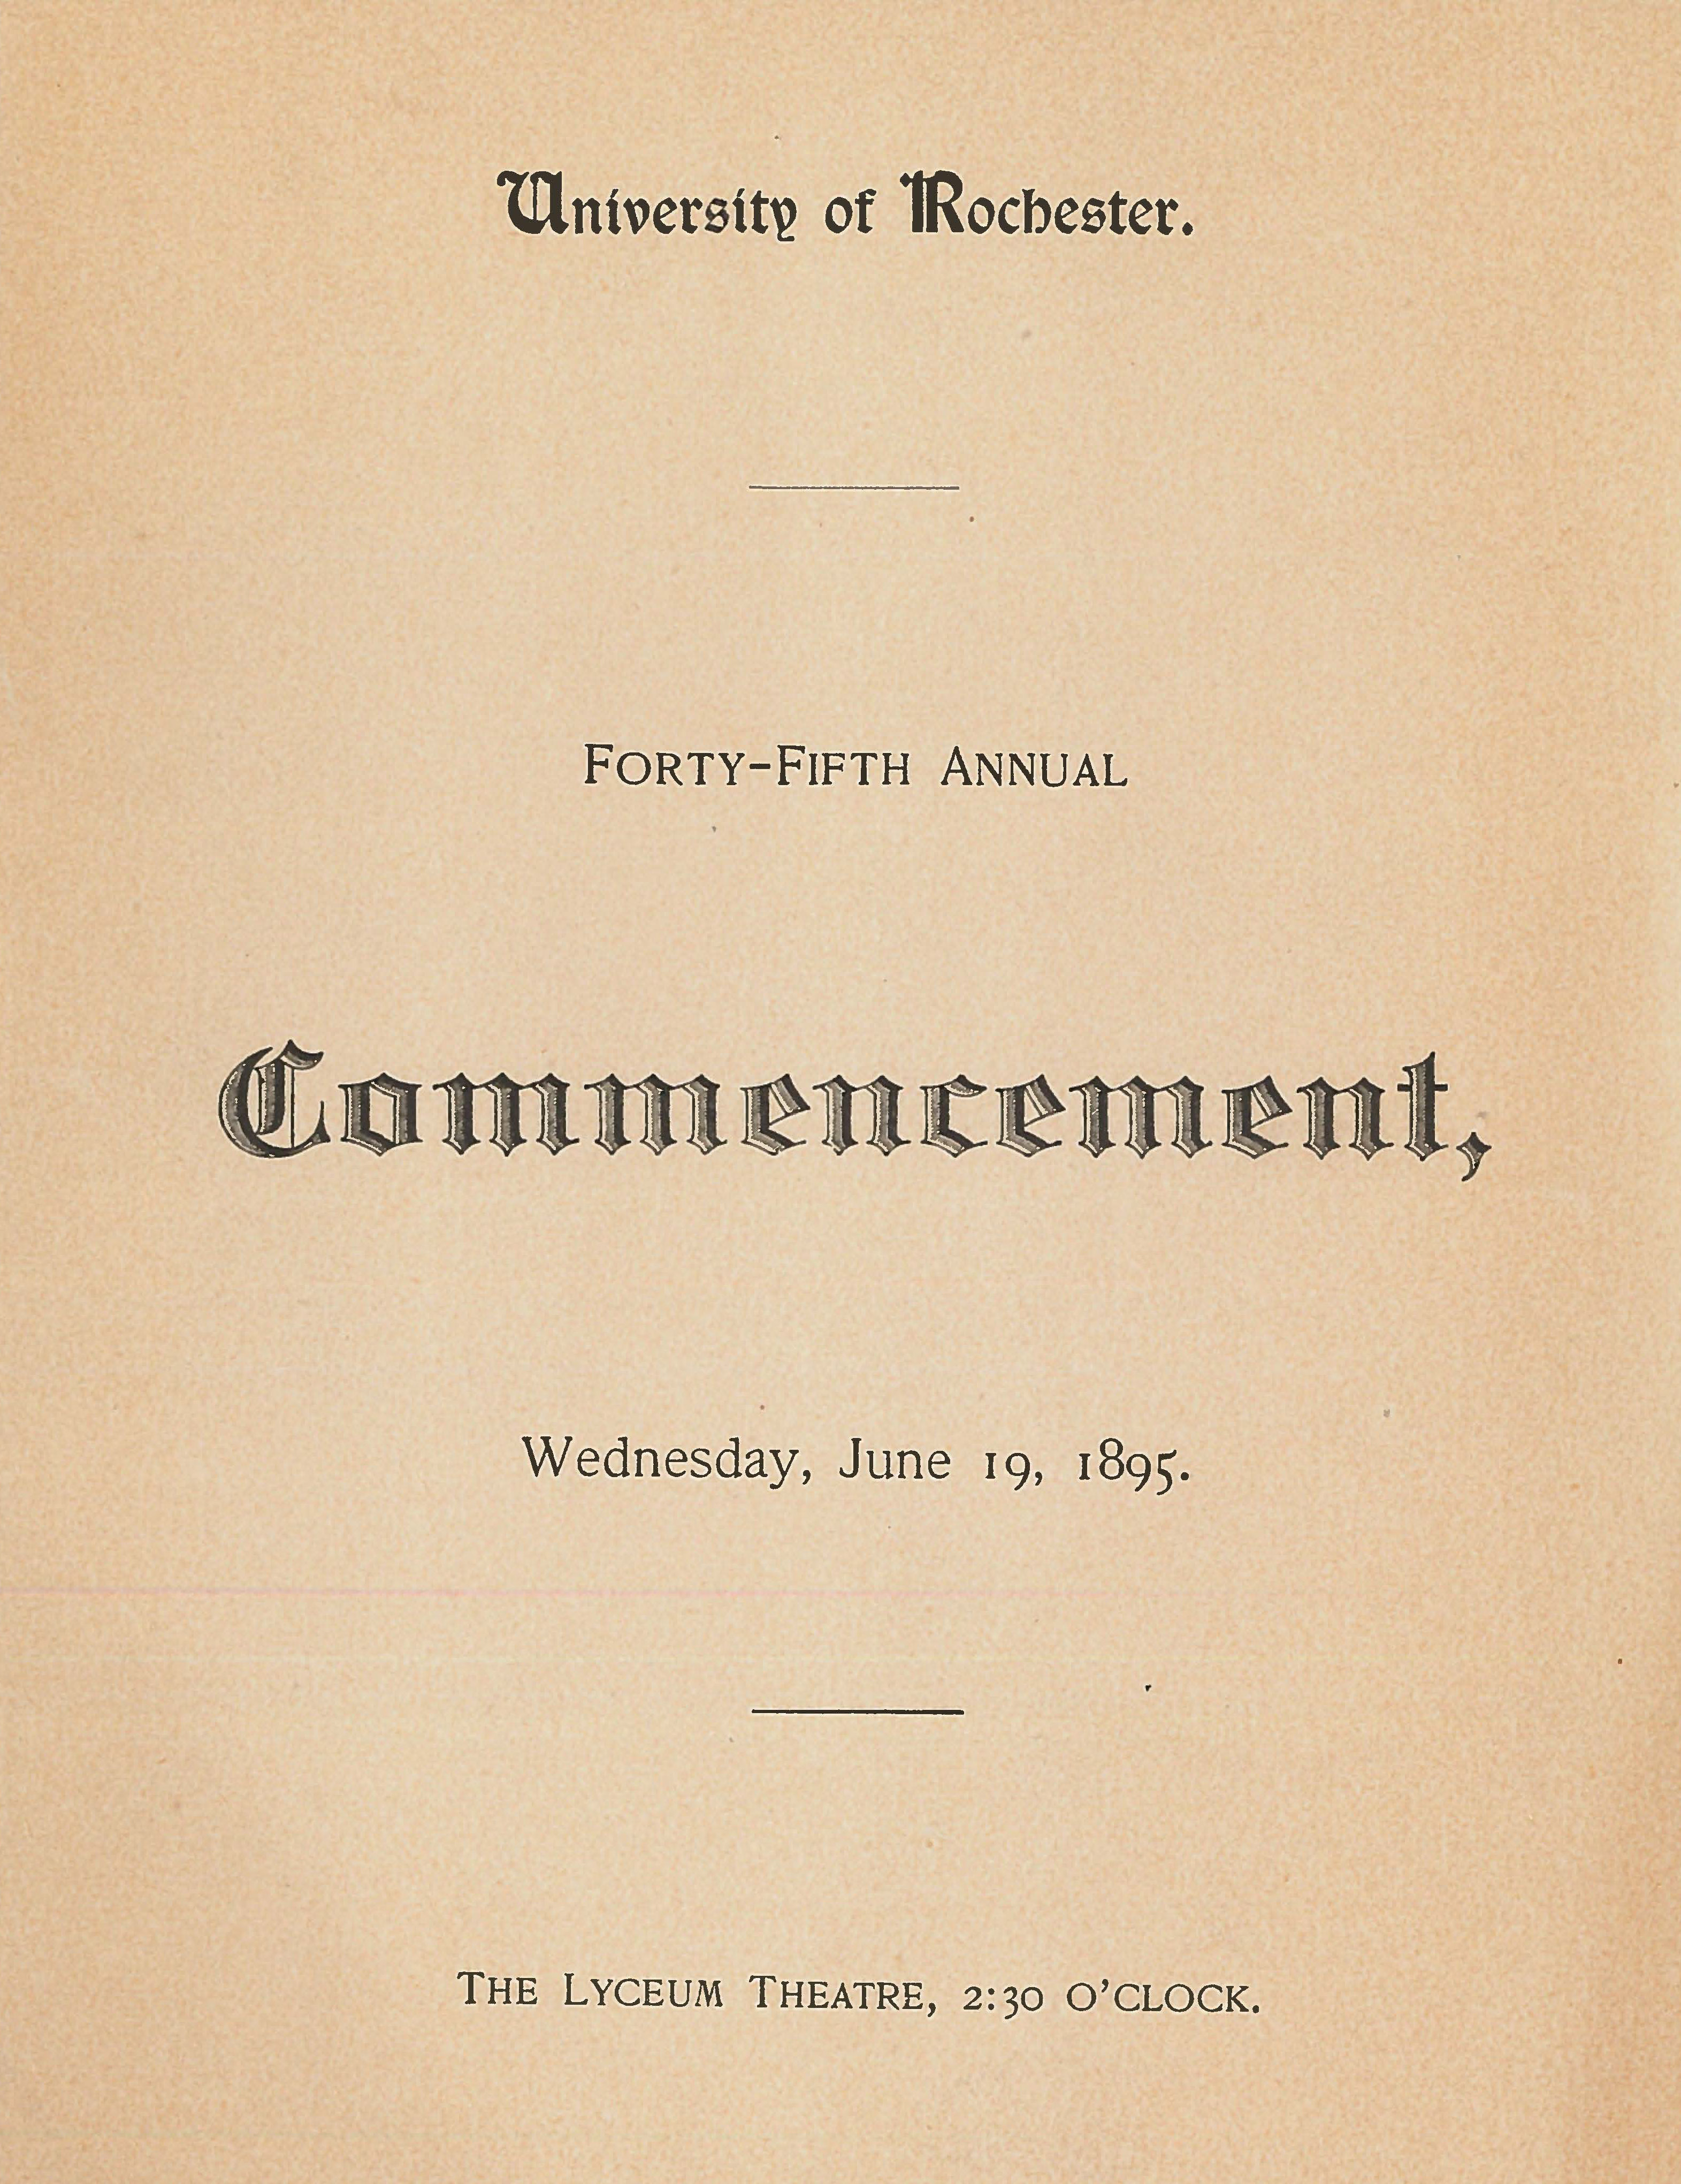 Commencement program, 1895